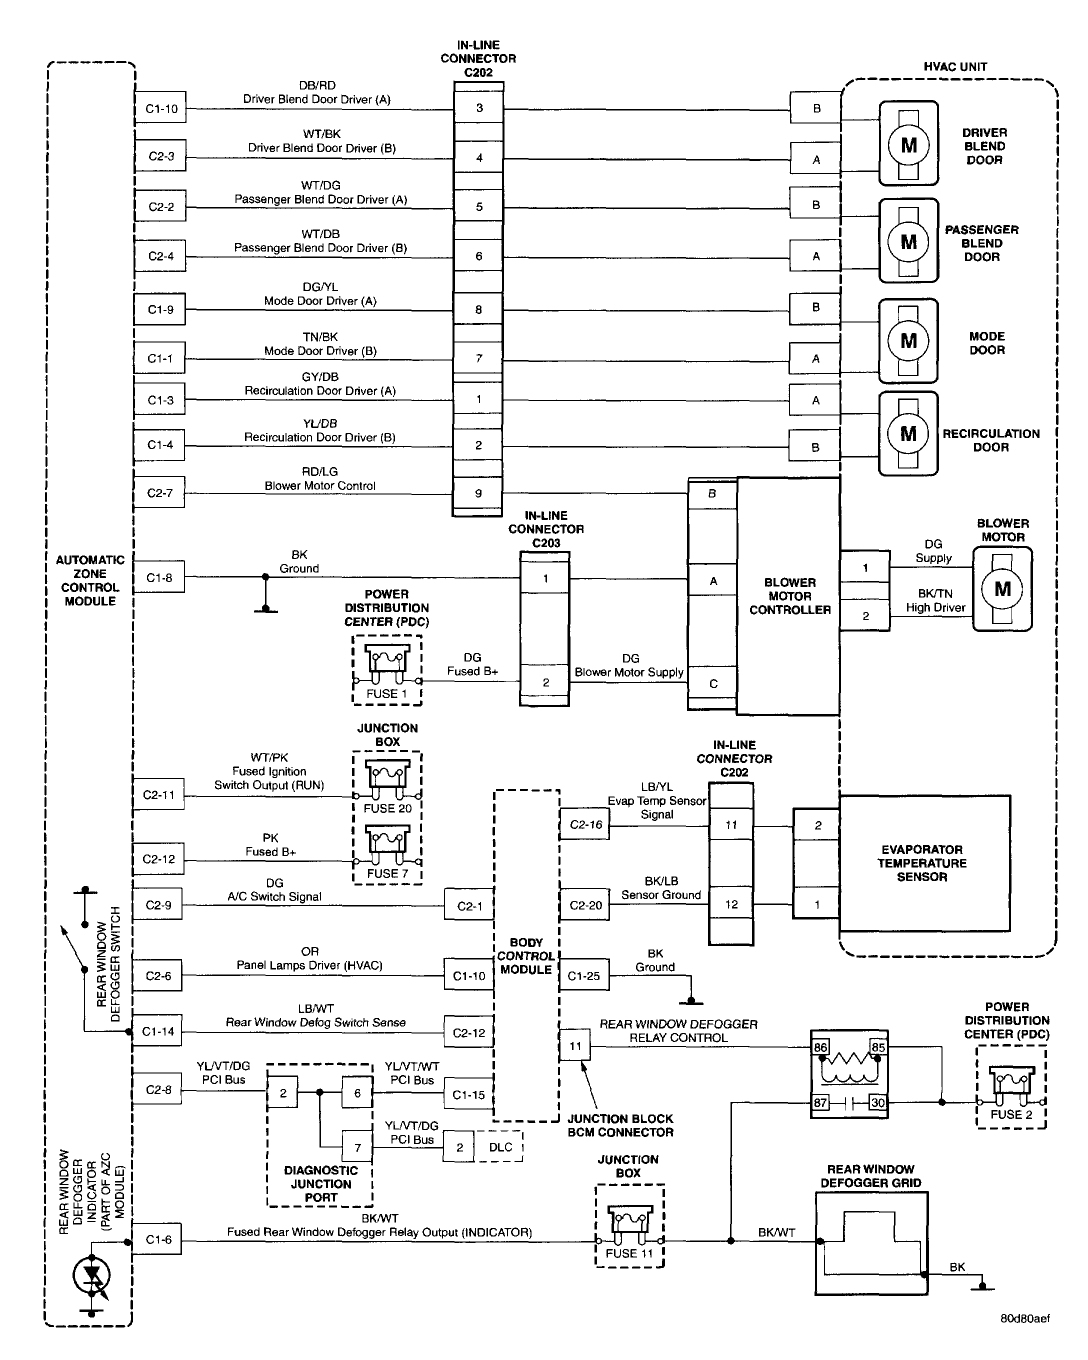 Jeep Liberty Wiring Diagram | Wiring Diagram on jeep wrangler wiring diagram, ford econoline van wiring diagram, jeep liberty shift solenoid, jeep liberty relay location, isuzu hombre wiring diagram, jeep liberty fan belt, volkswagen golf wiring diagram, lexus gx wiring diagram, 2004 jeep wiring diagram, jeep liberty no crank, subaru baja wiring diagram, 2008 jeep wiring diagram, saturn aura wiring diagram, jeep liberty clutch, jeep liberty gas gauge, jeep liberty ignition wiring, jeep liberty distributor, jeep liberty engine swap, kia forte wiring diagram, mercury milan wiring diagram,